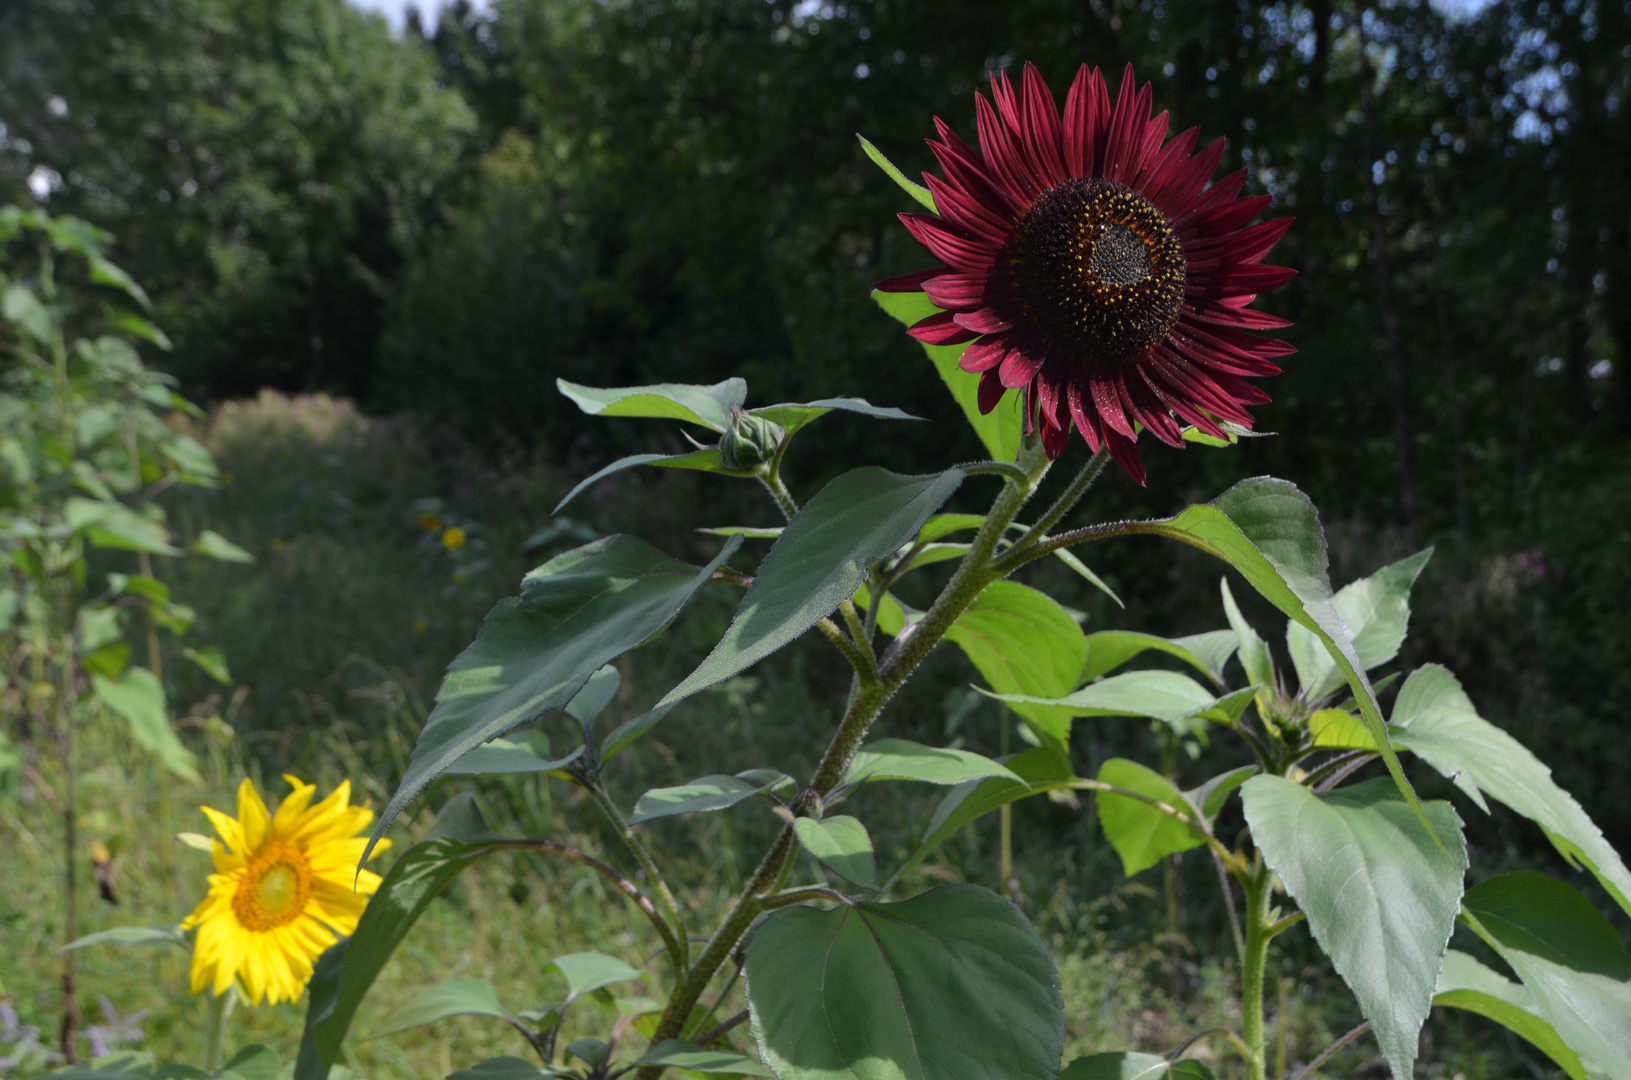 Große rote Sonnenblume